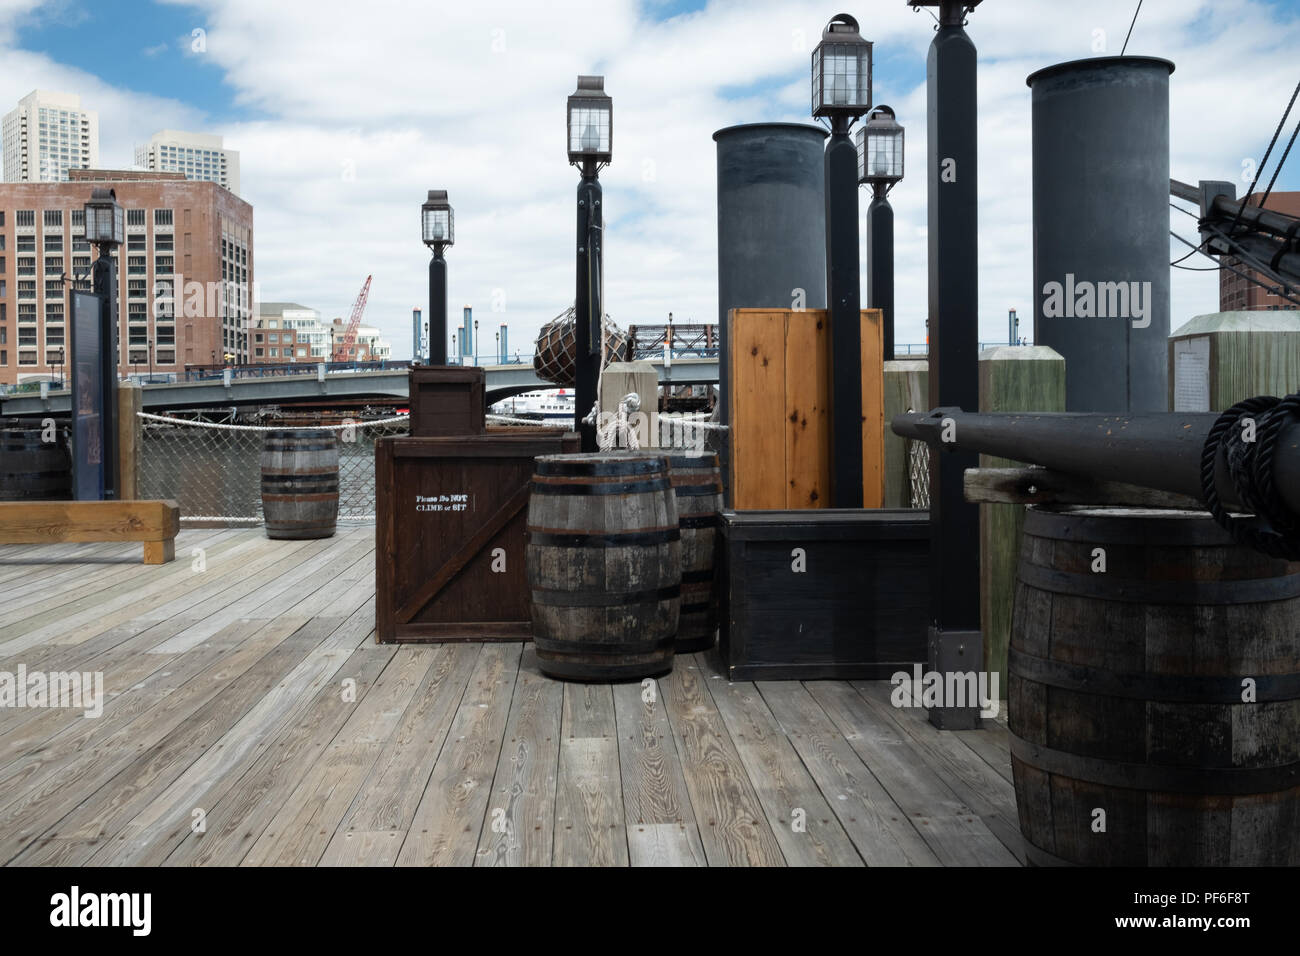 Wooden Barrels at Boston Tea Party Museum - Stock Image